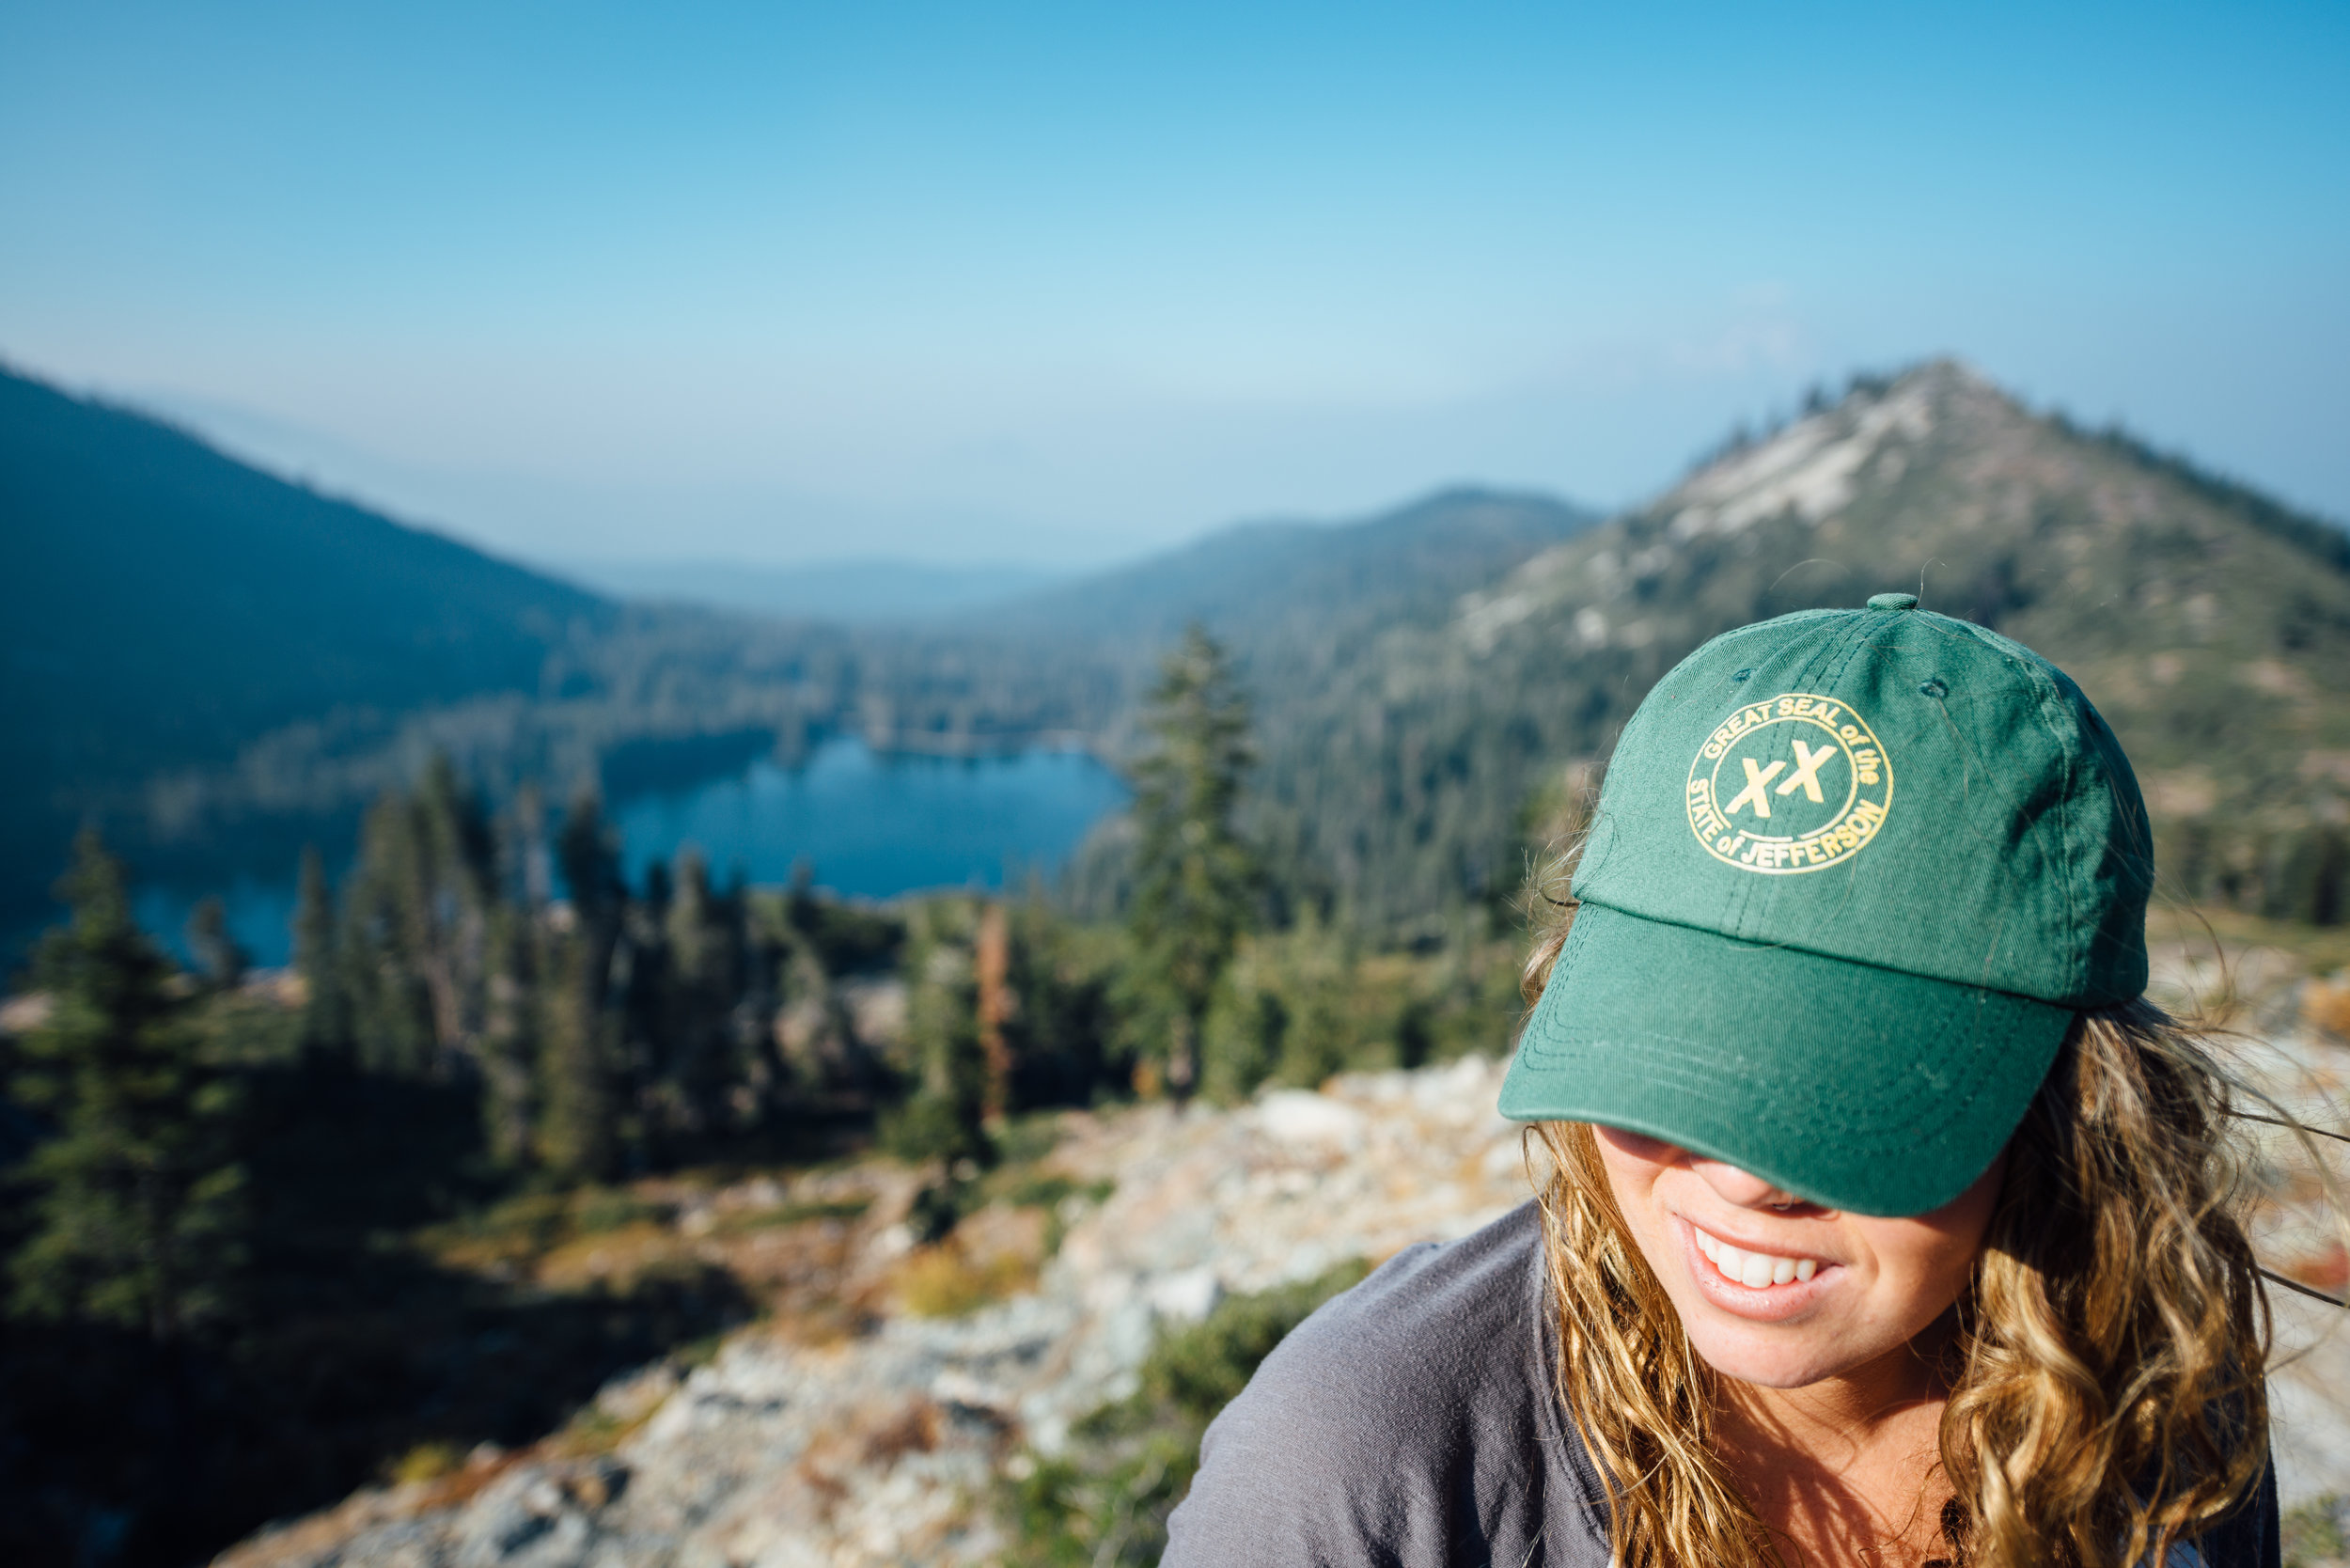 Reppin' my State of Jefferson hat! Thank you Isaac for your patience and for the shot!